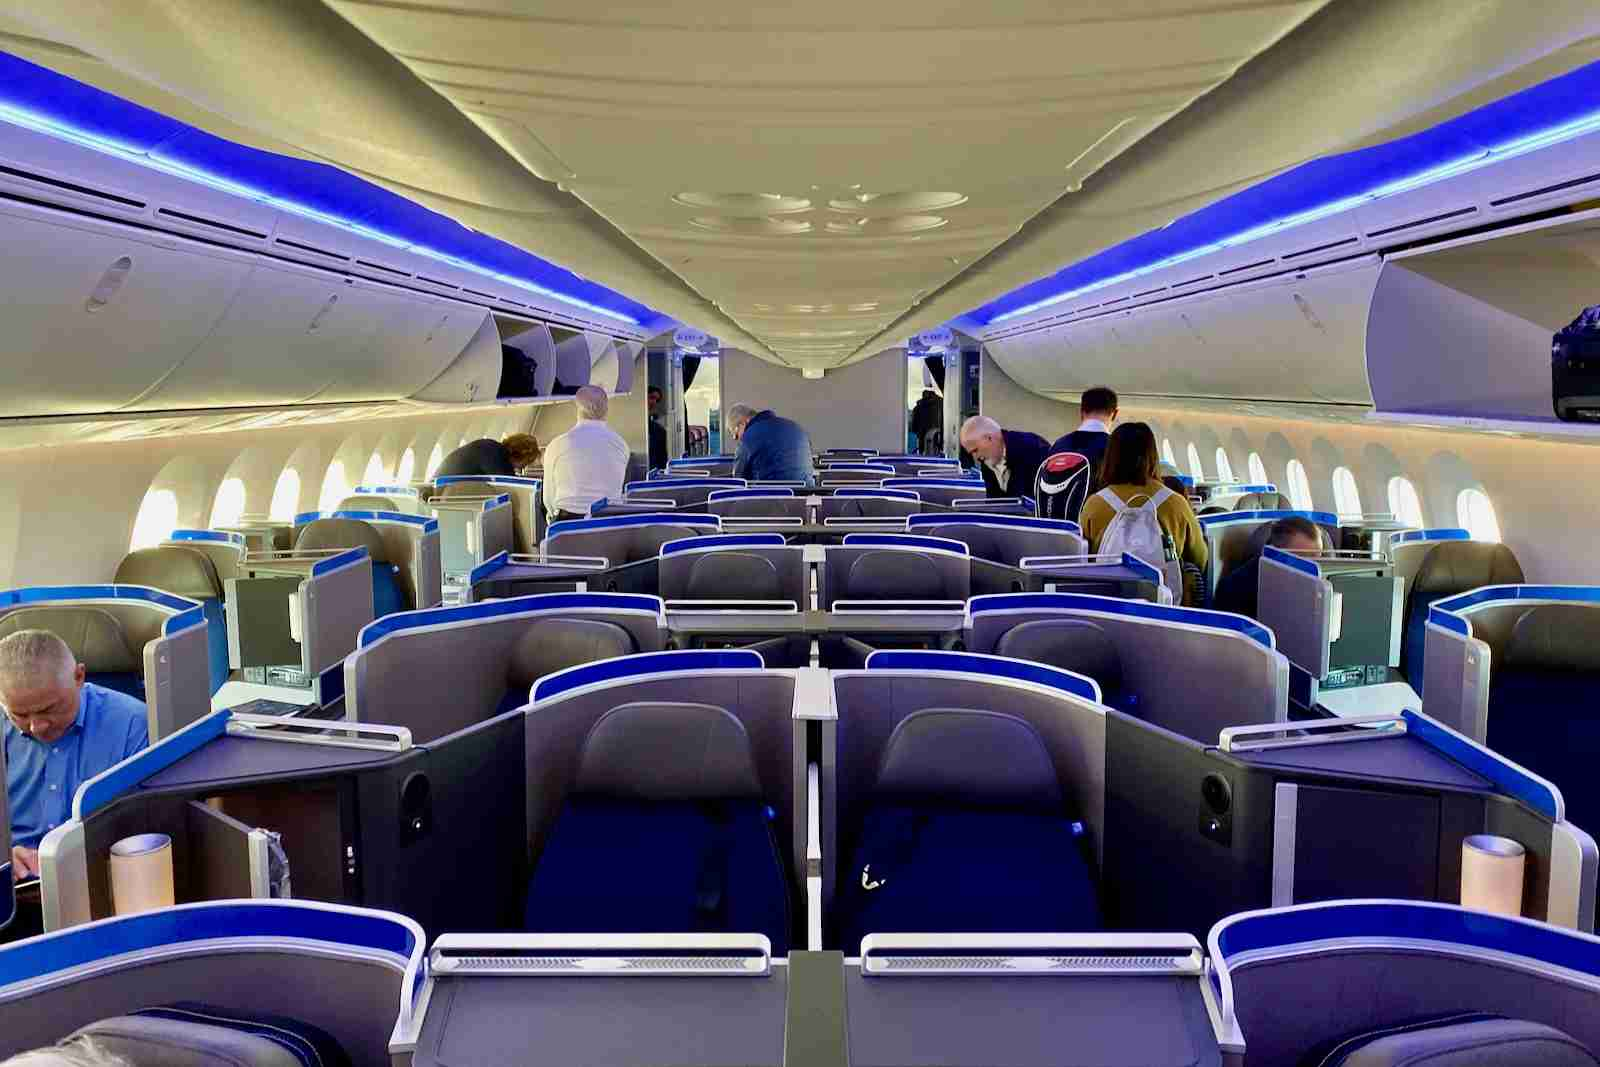 The United Polaris cabin on the 787-10